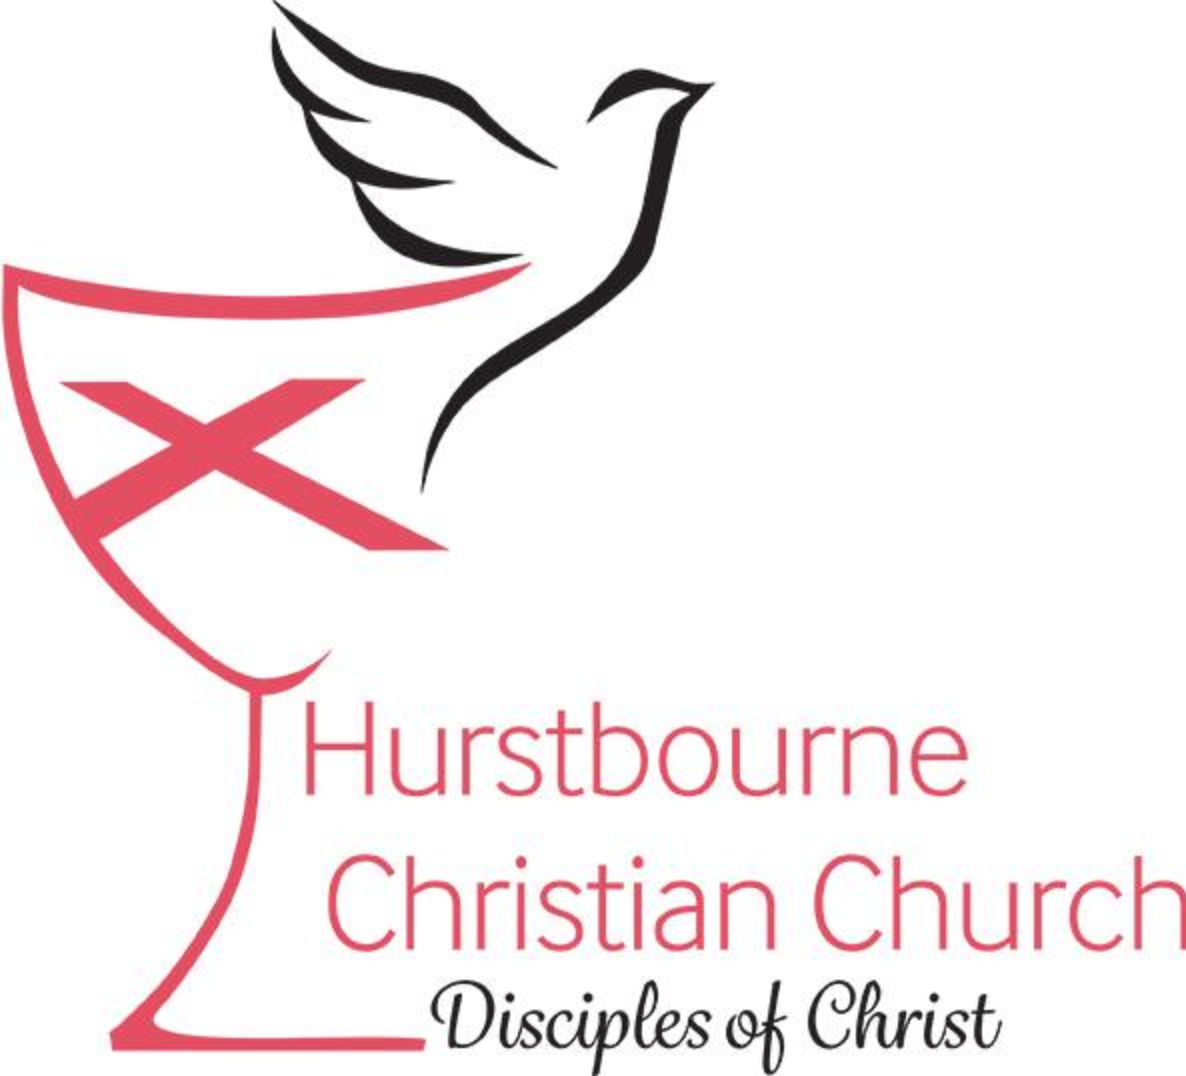 Hurstbourne Christian Church (Disciples of Christ), Louisville, KY